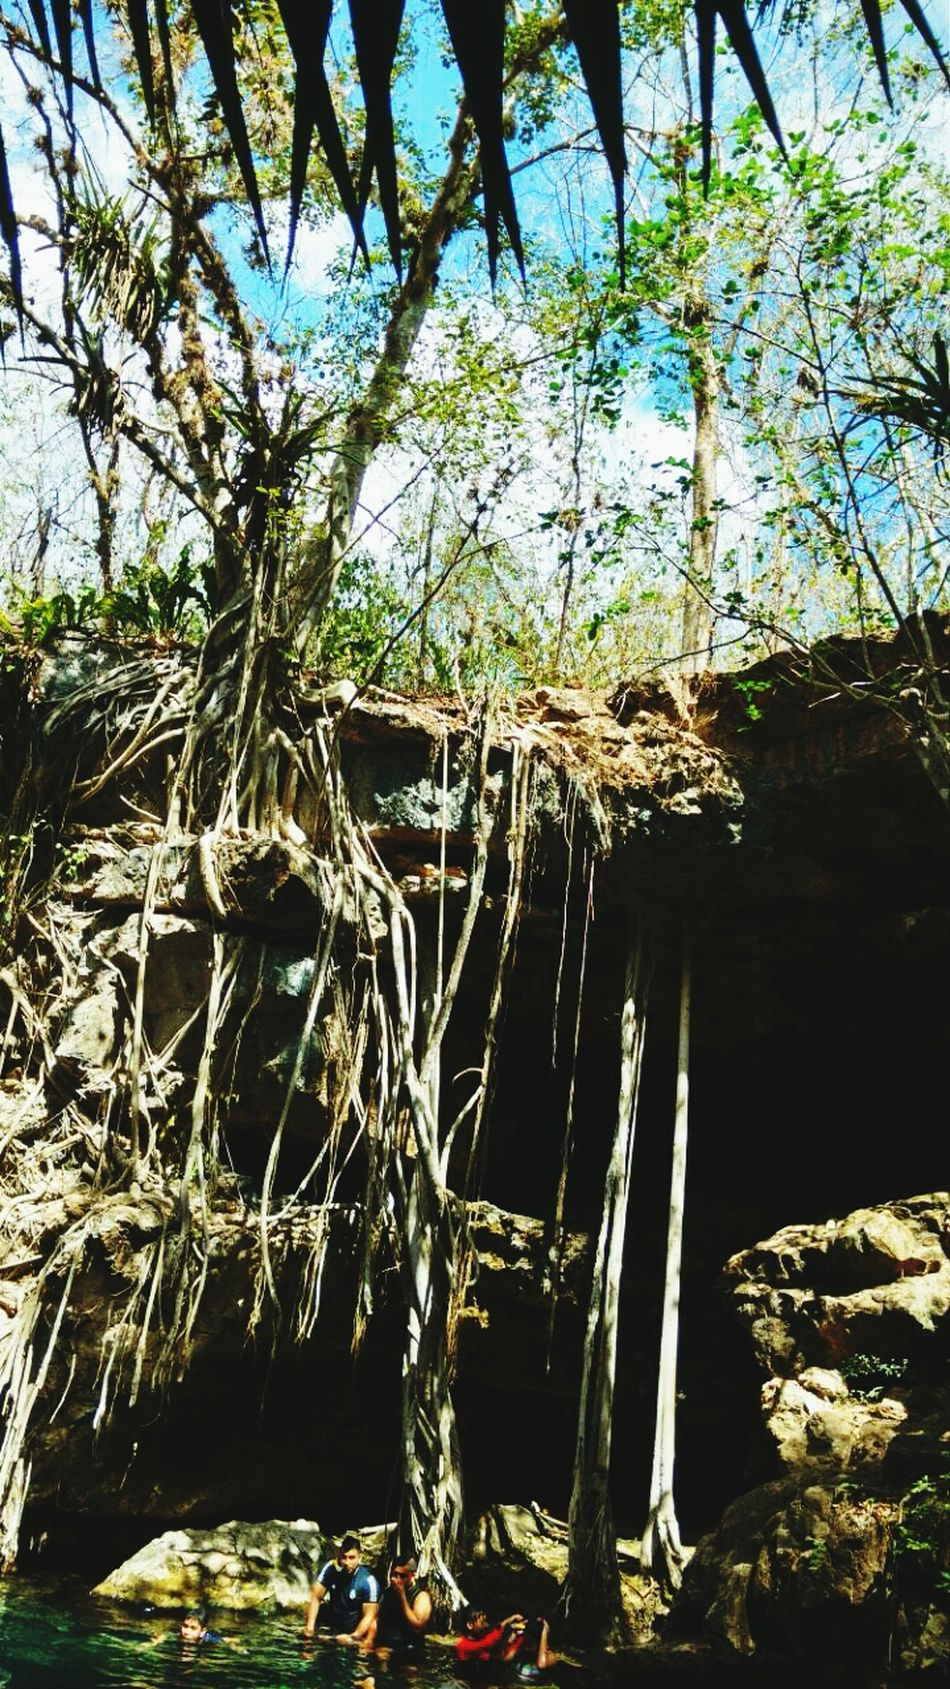 Nature Cenote Cabaña Arboles , Naturaleza Tranquility Beauty In Nature Yucatan Mexico Travel Destinations Sky Nature_collection